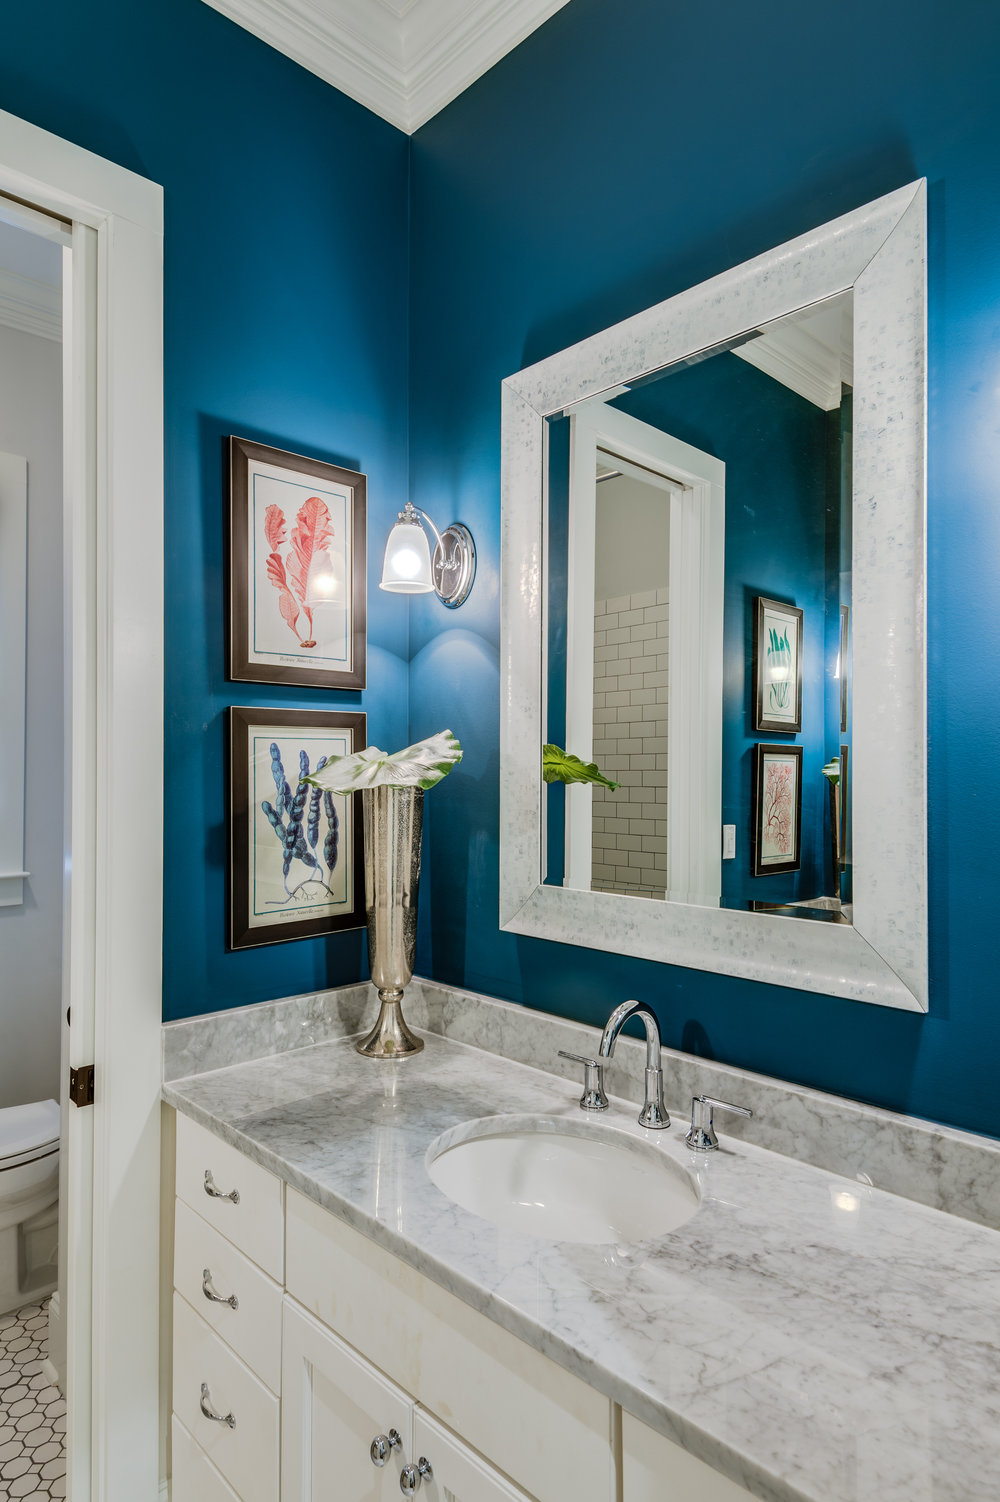 KHB Interiors garden district new orleans interior designer old metairie  lakeview decorator river ridge designer interiors .jpg